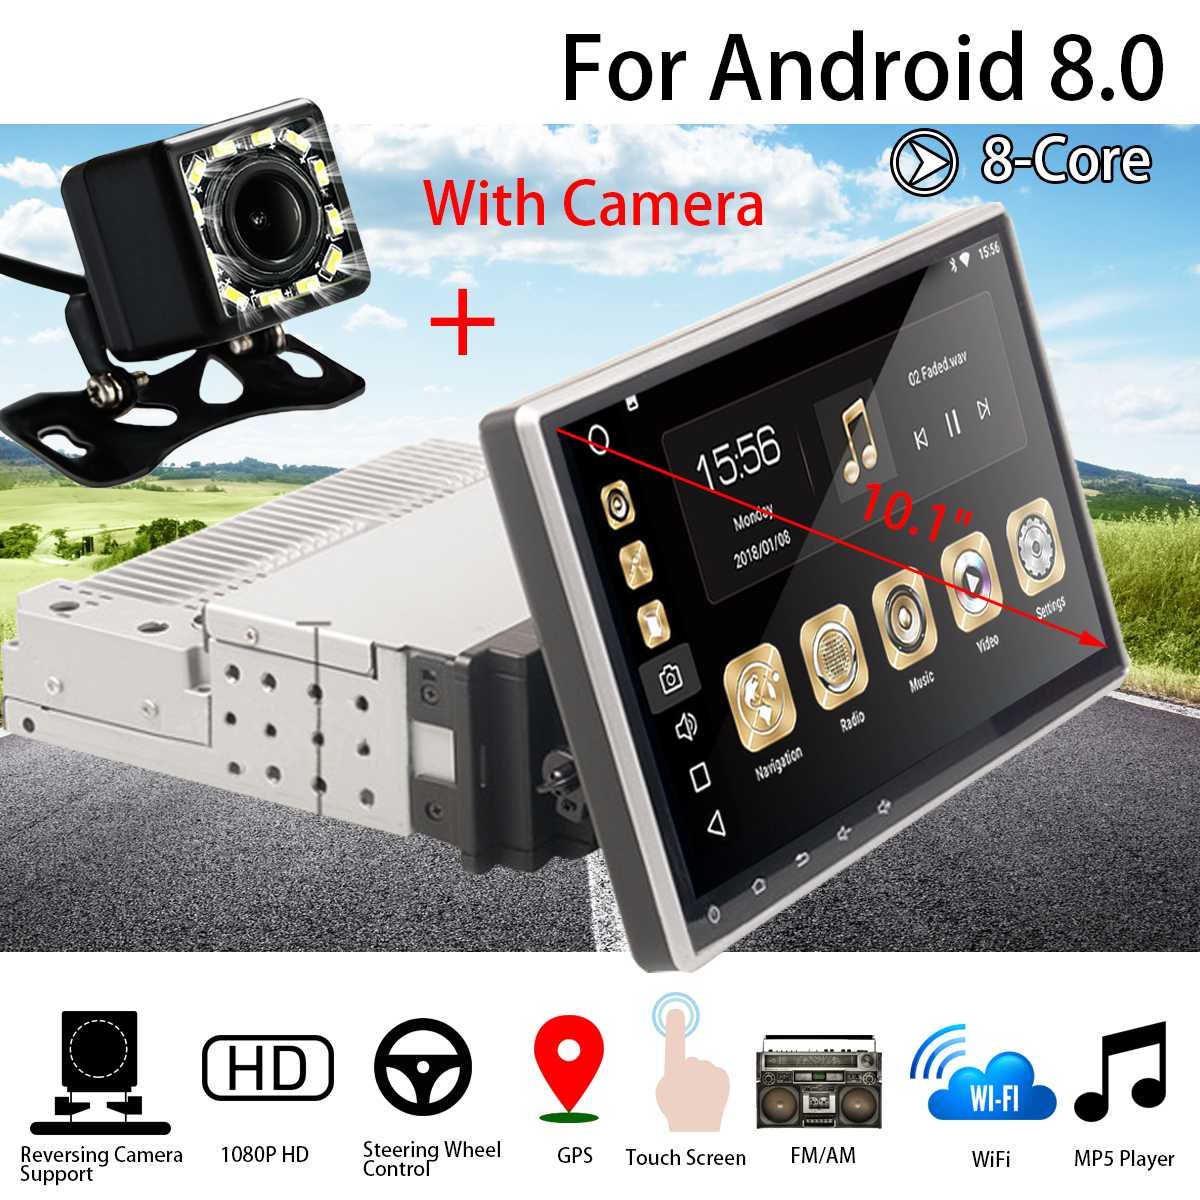 Car Multimedia Player 10.1 1G+16G for Android8 Car Stereo 1DIN bluetooth WIFI GPS Quad Core Radio Video MP5 Player With CameraCar Multimedia Player 10.1 1G+16G for Android8 Car Stereo 1DIN bluetooth WIFI GPS Quad Core Radio Video MP5 Player With Camera